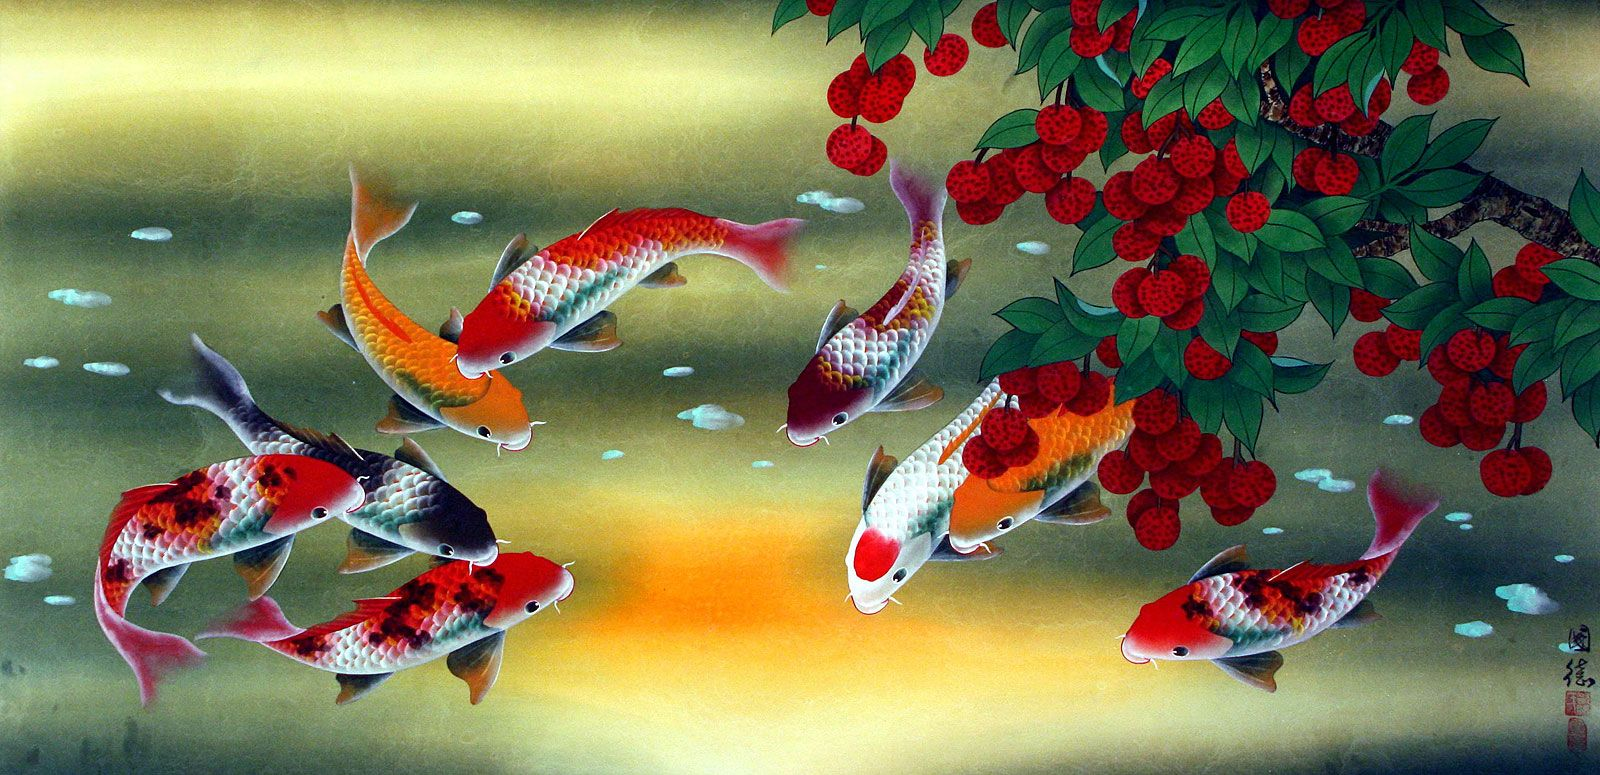 Fish artwork painting asian koi fish paintings for Japanese koi carp paintings